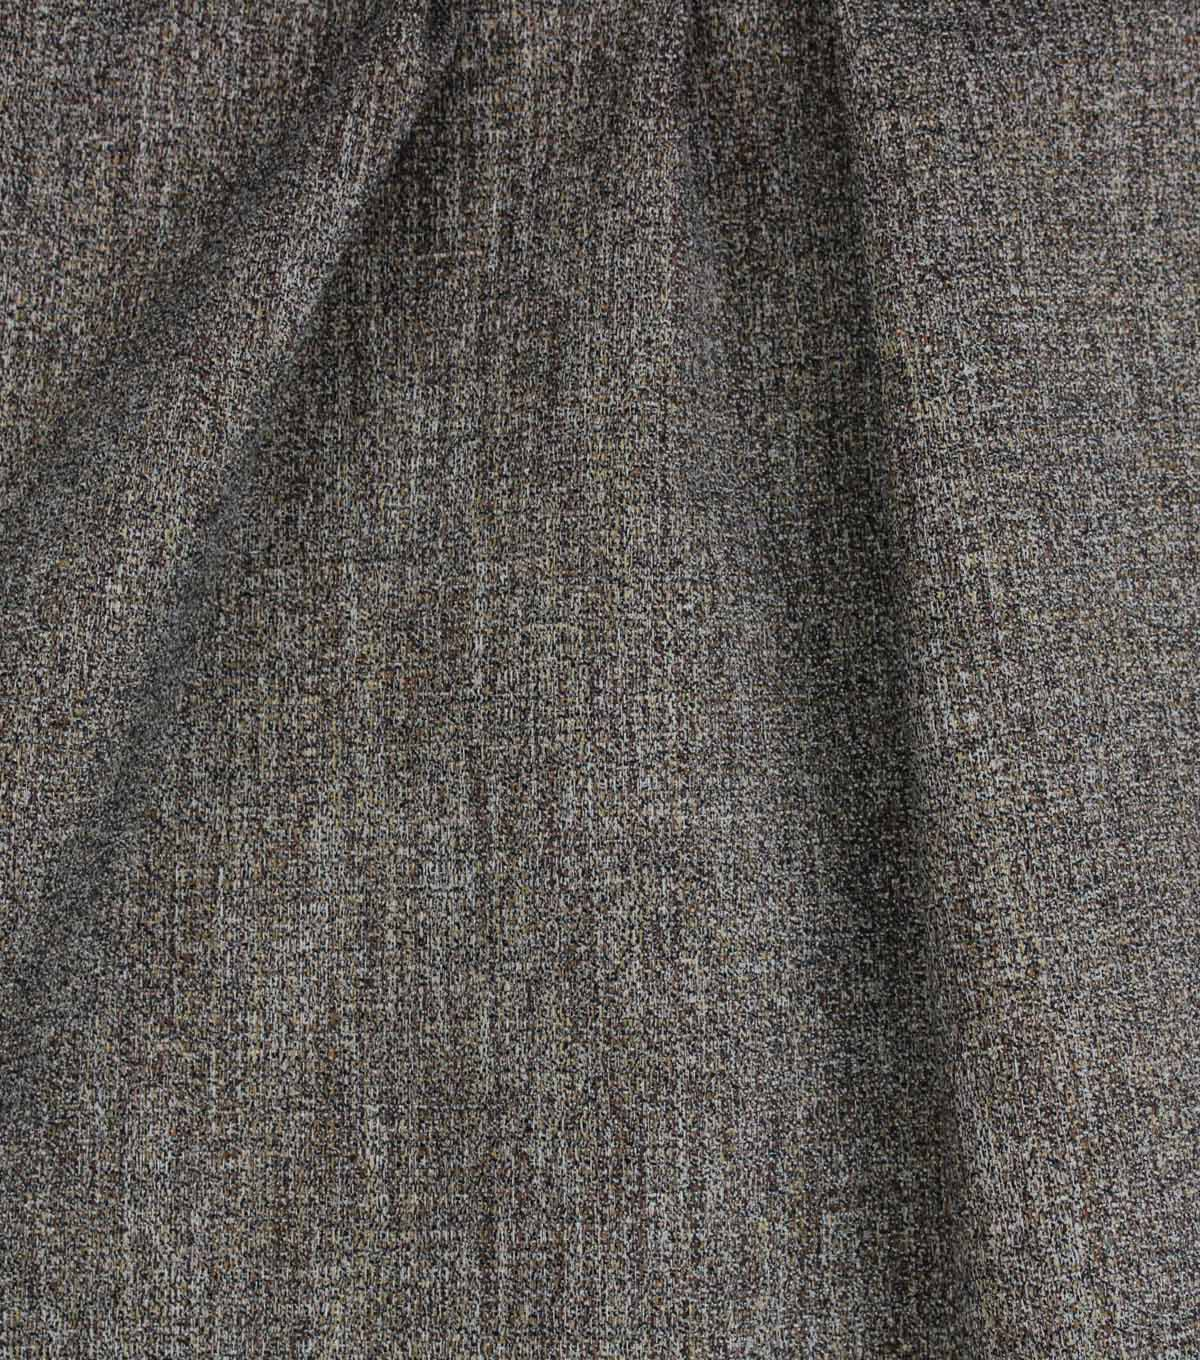 Richloom Studio Multi-Purpose Decor Fabric 56\u0027\u0027-Cobblestone Zerita